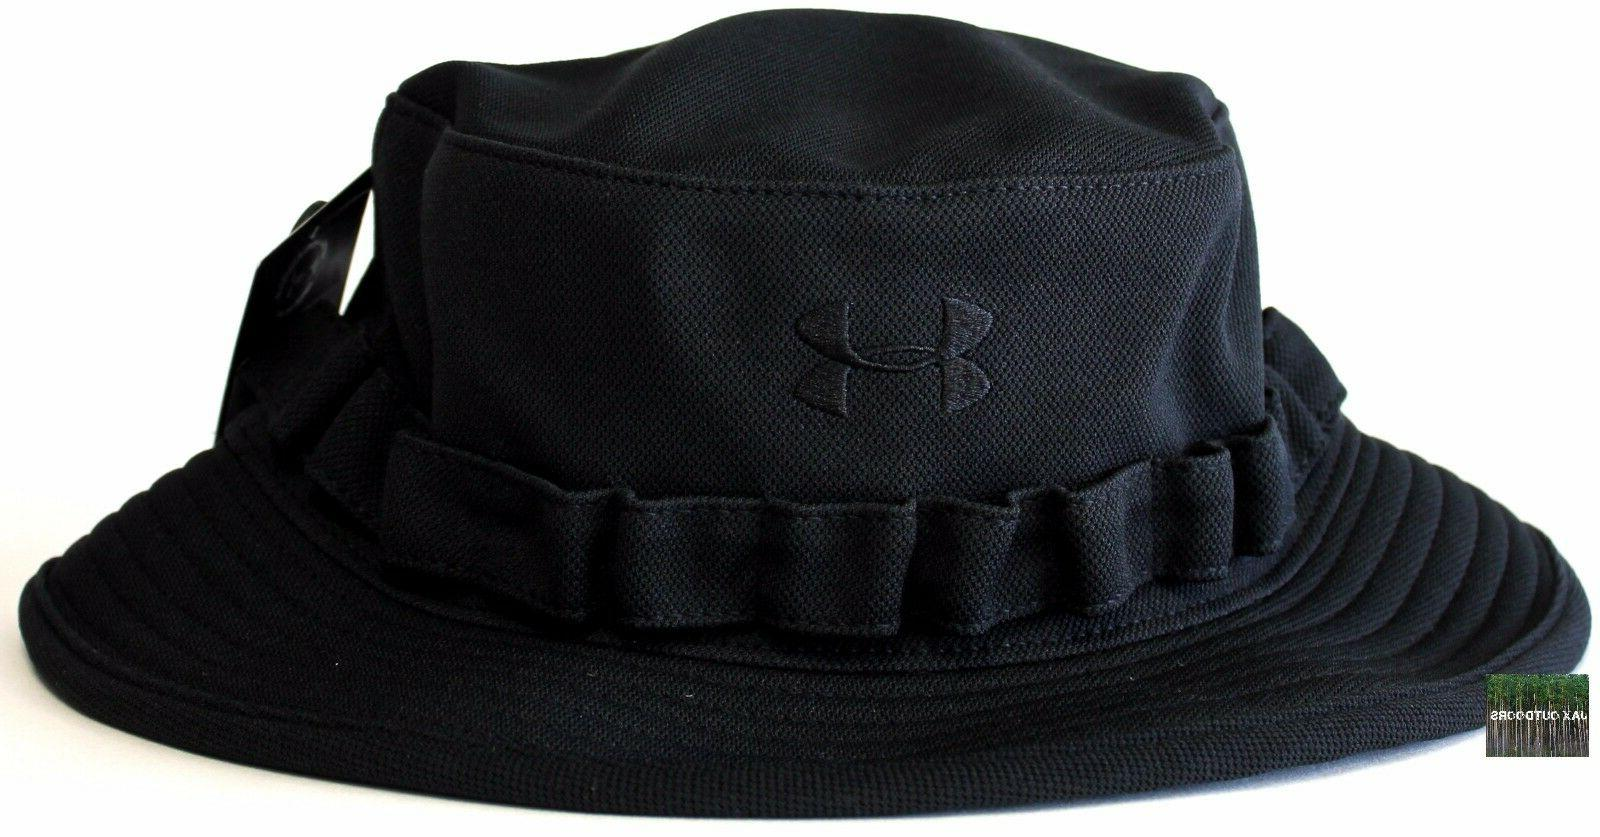 1219730 black tactical bucket hat